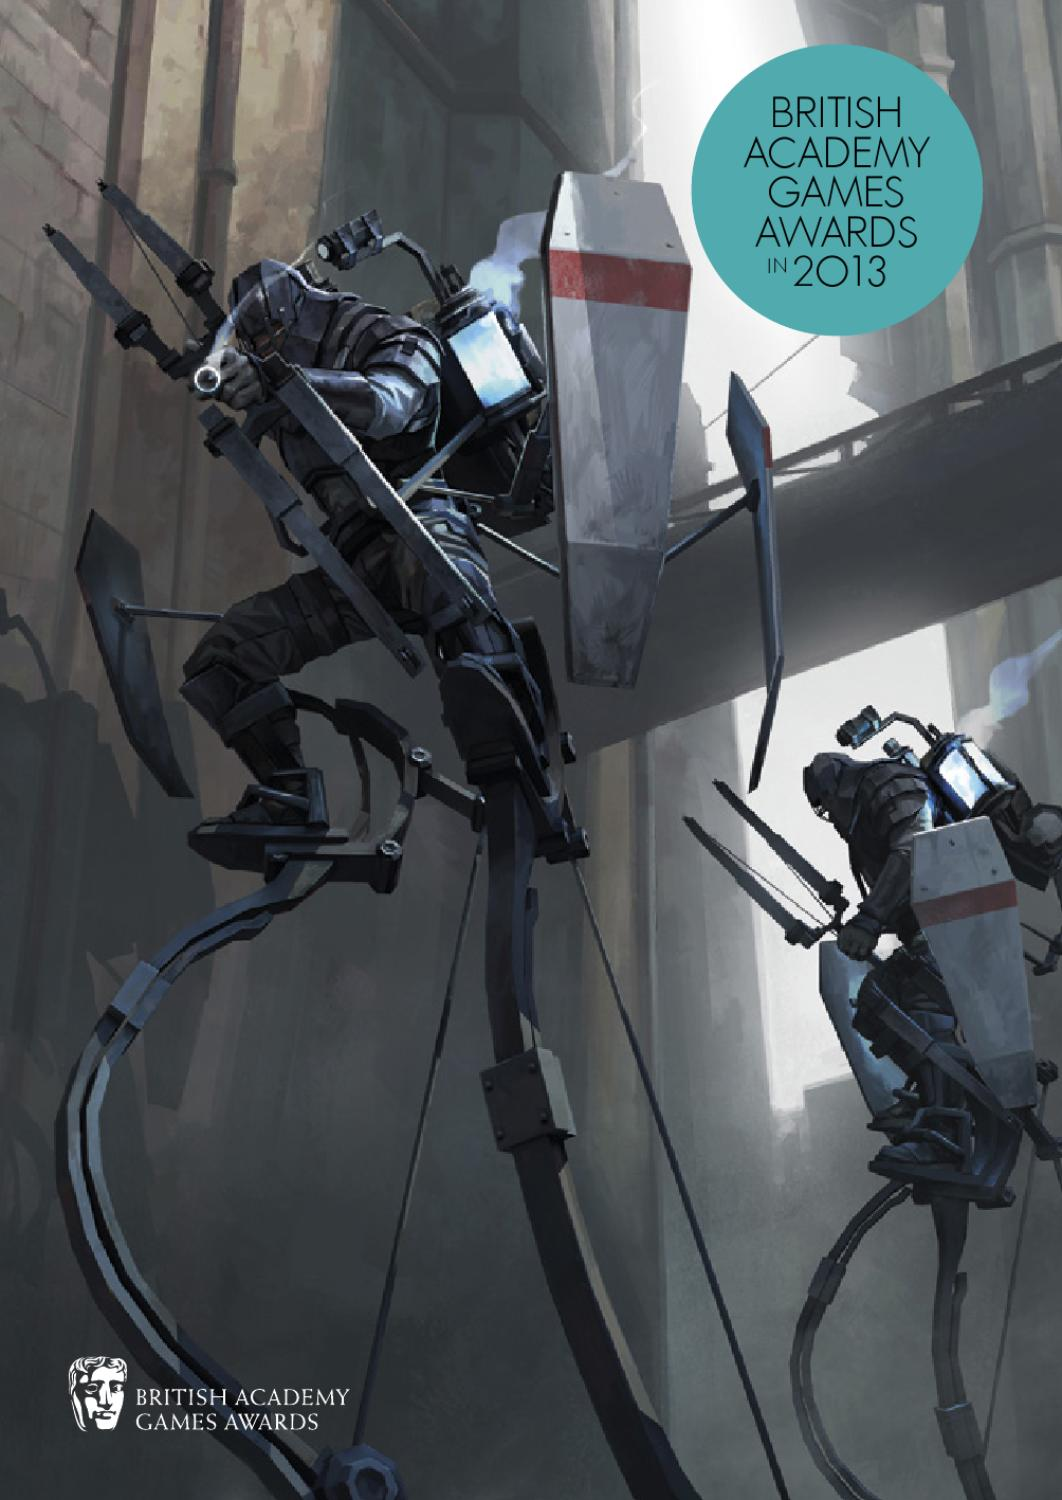 British Academy Games Awards in 2013 - Dishonored variant